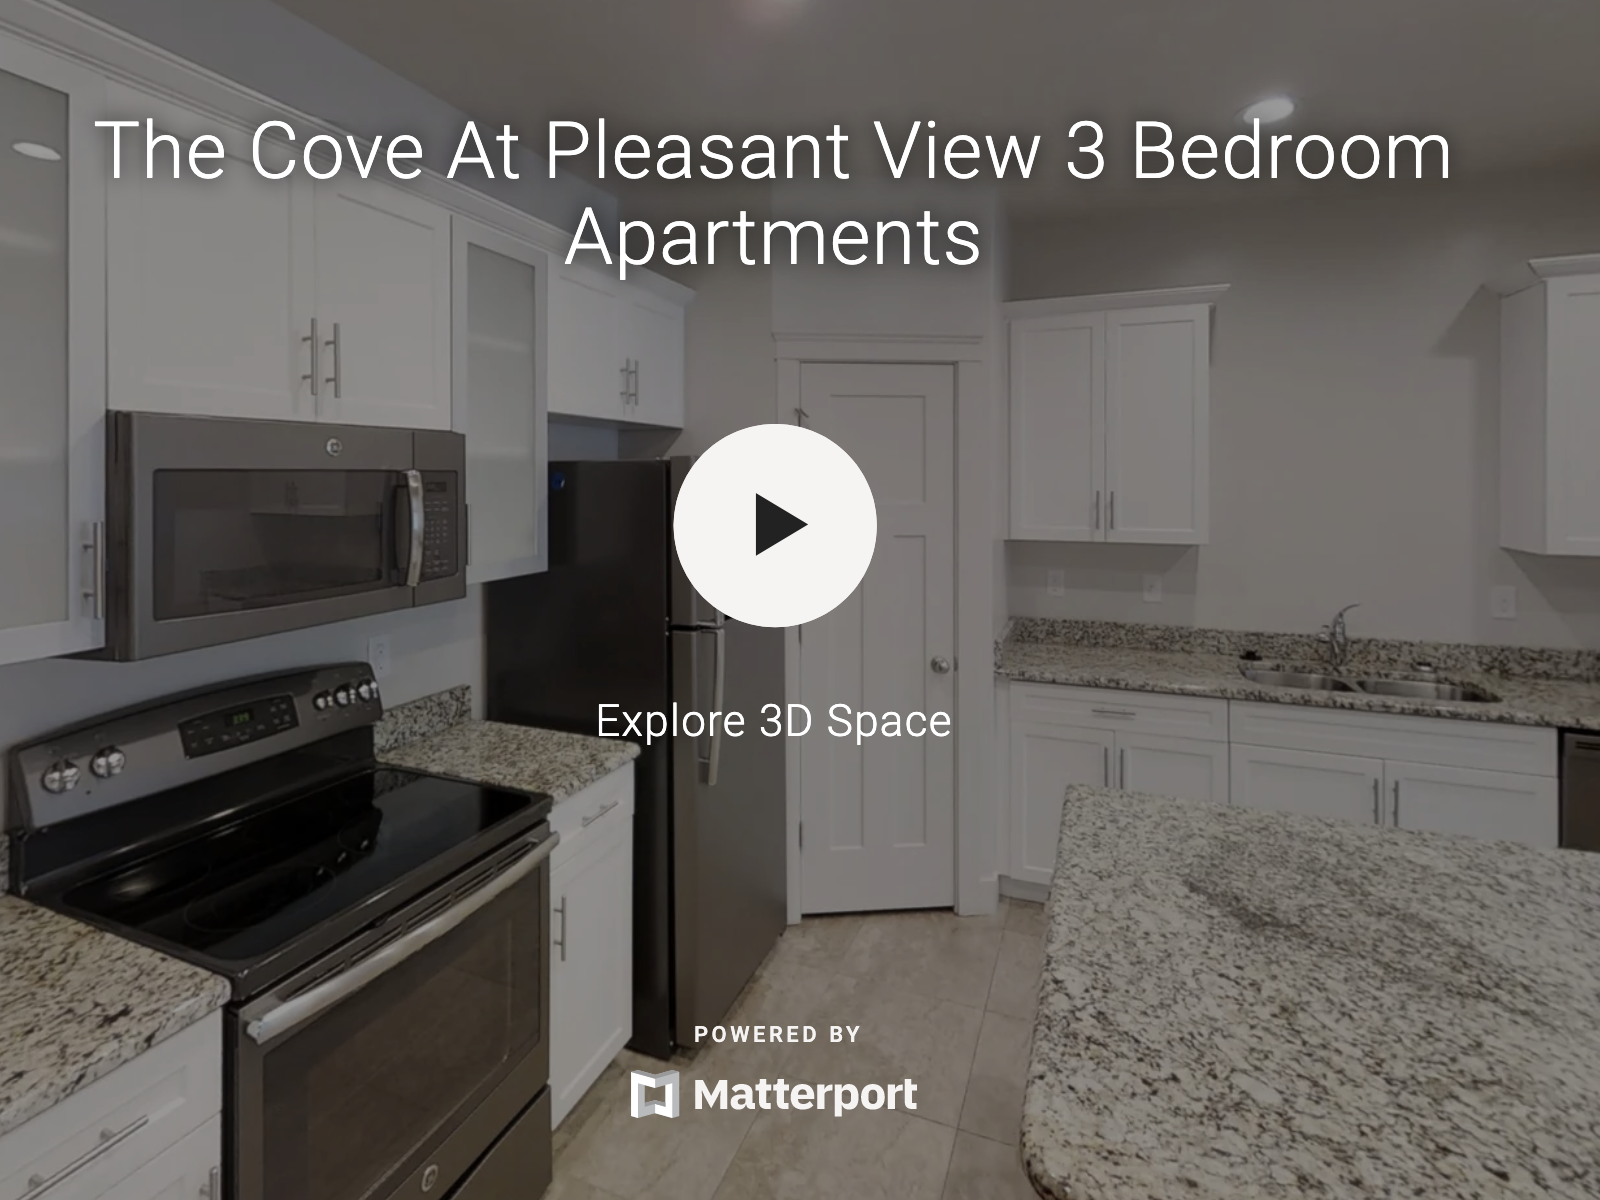 3D Virtual Tour of The Cove at Pleasant View Apartments